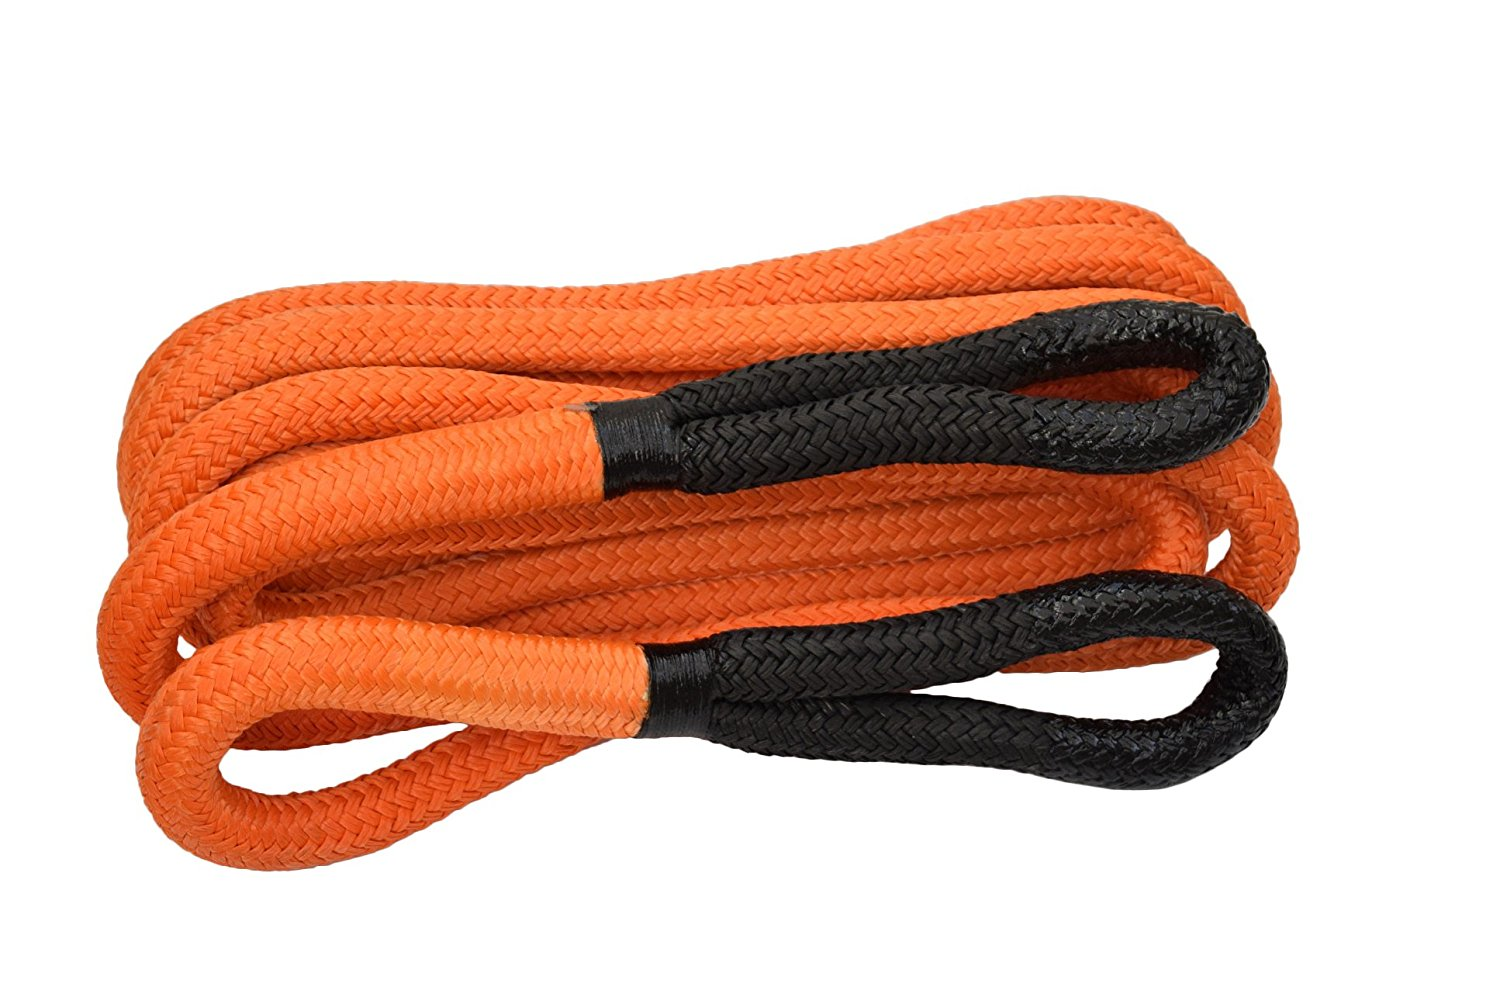 Offroad LKRYWB 3//4 Inch X 20 Foot Kinetic Rope Yellow//Black Arachni Recovery Equipment A.R.E